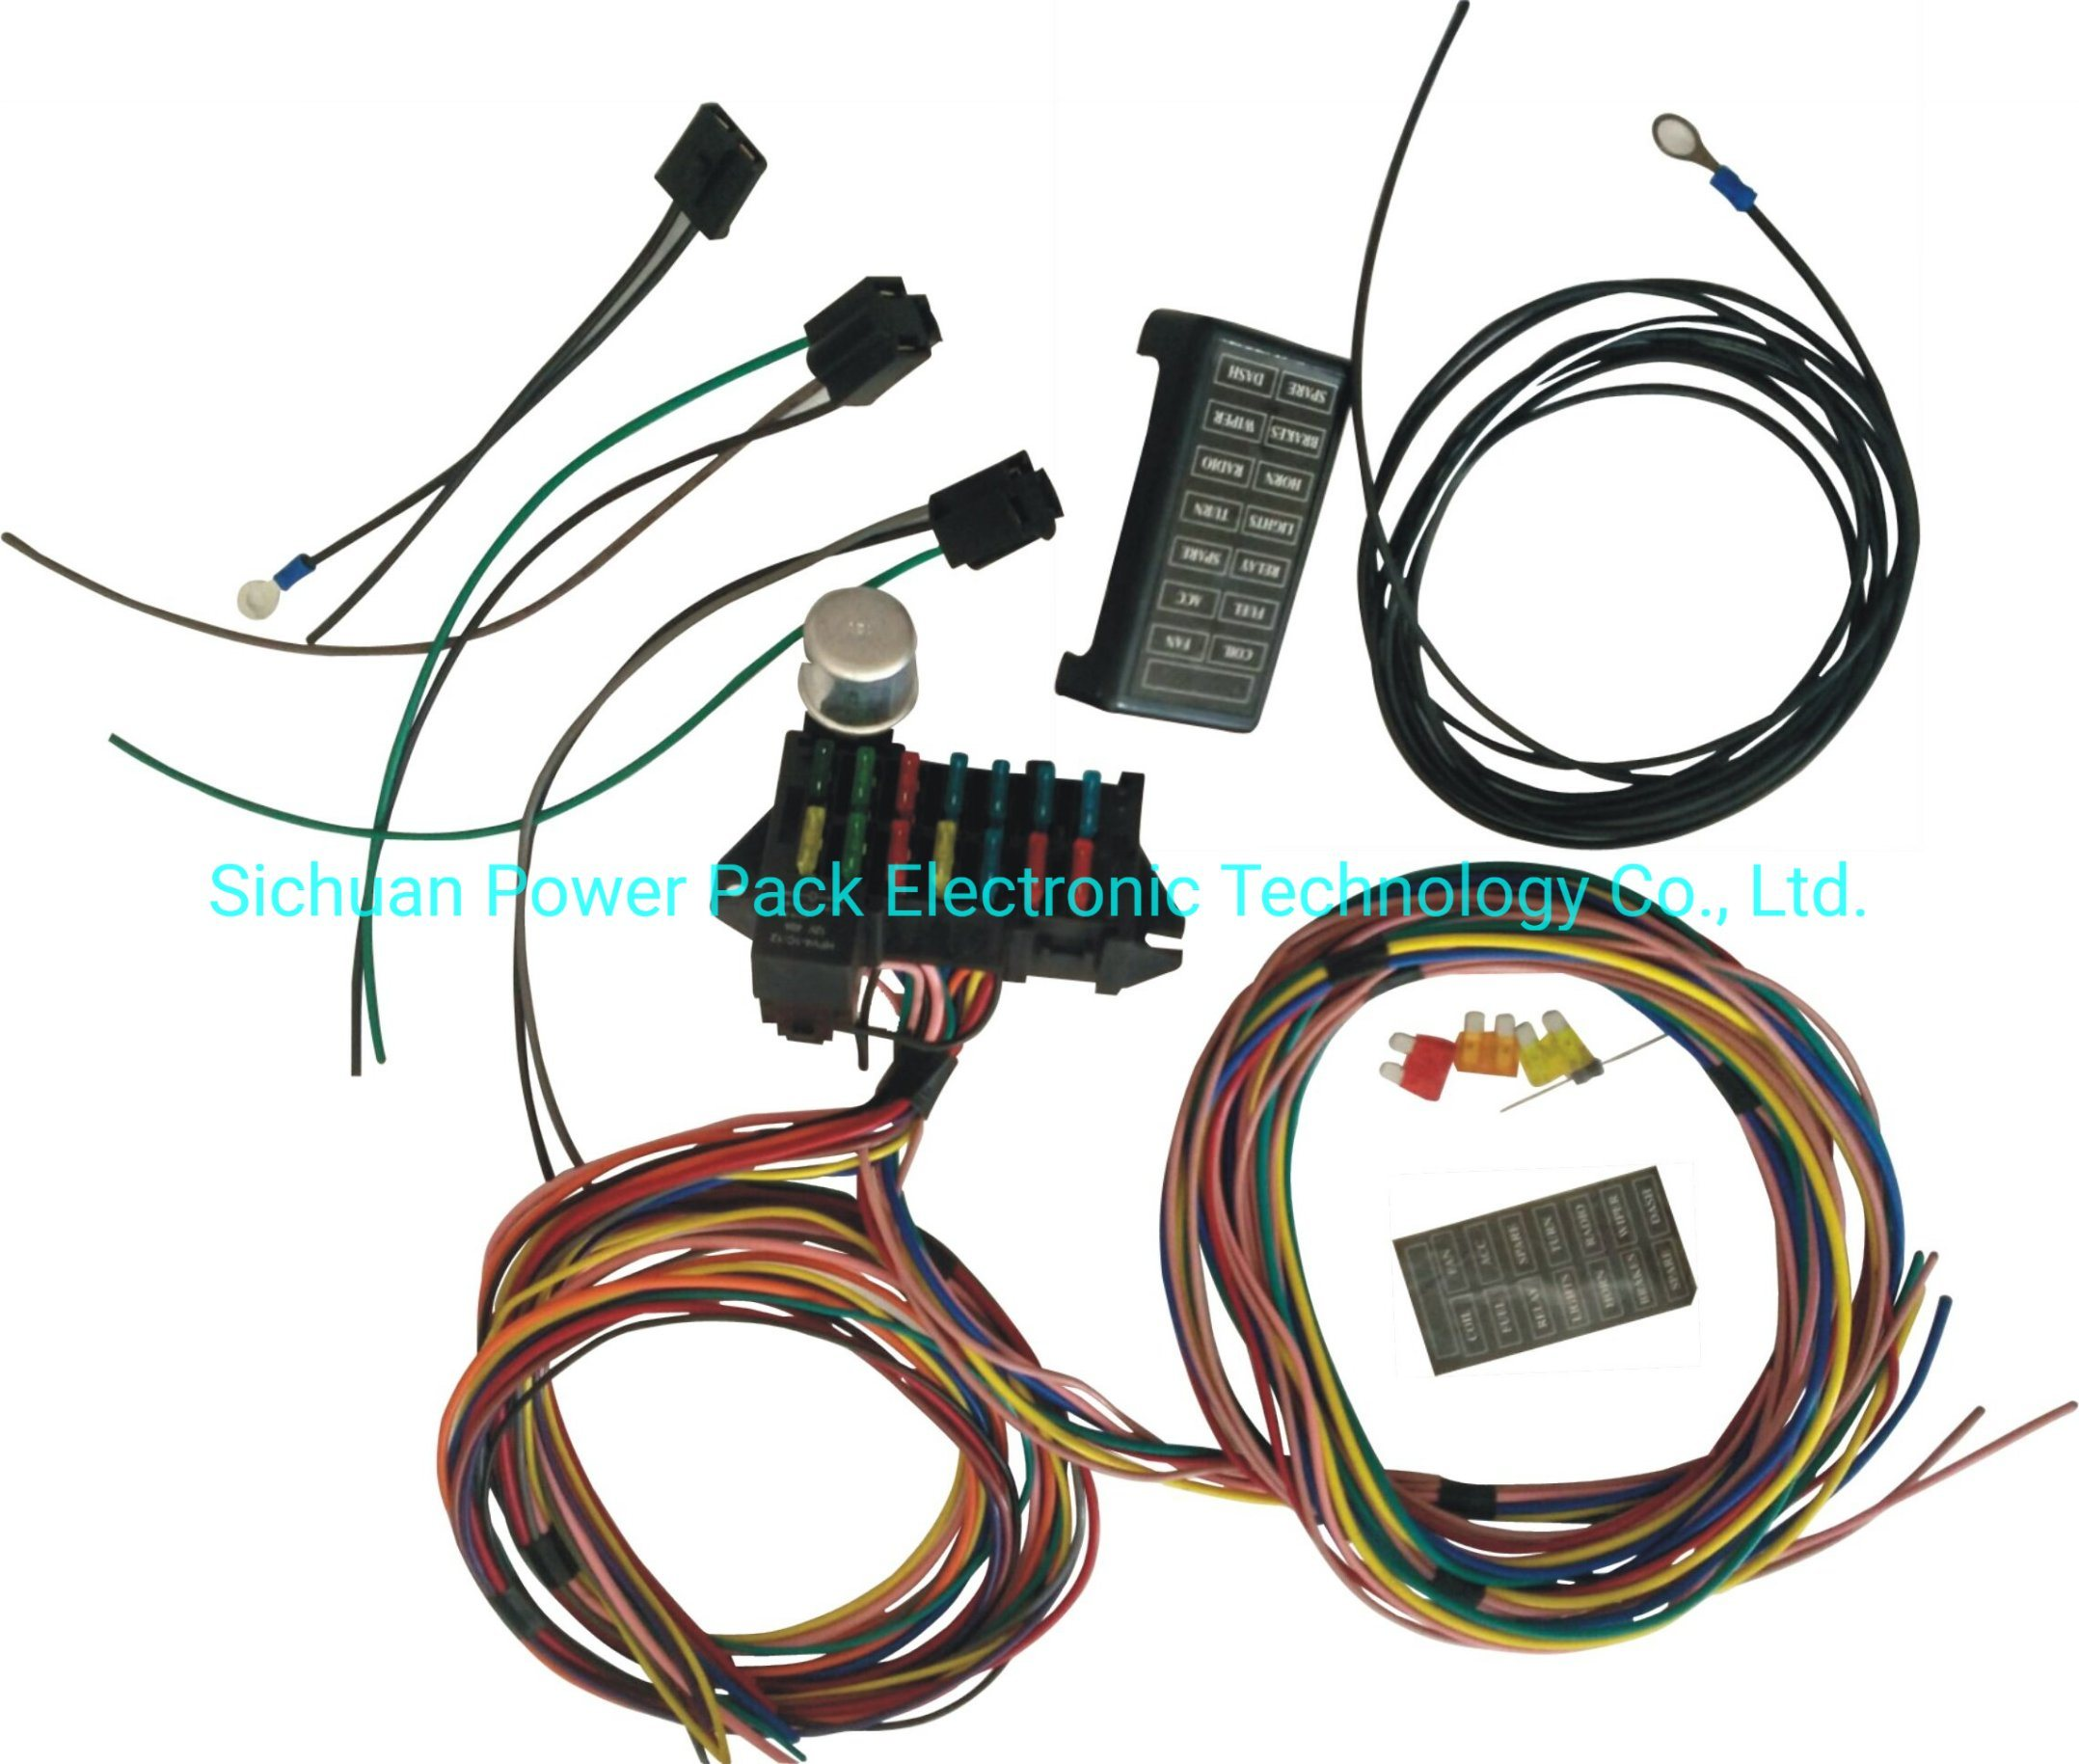 [DIAGRAM_34OR]  China 12-14 Circuit Universal Wiring Harness Muscle Car Hot Rod Street Rod  XL Wires - China 14 Circuit Wire Harness, Wire Harness Kit | Hot Rod Wiring Harness |  | Sichuan Power Pack Electronic Technology Co., Ltd.